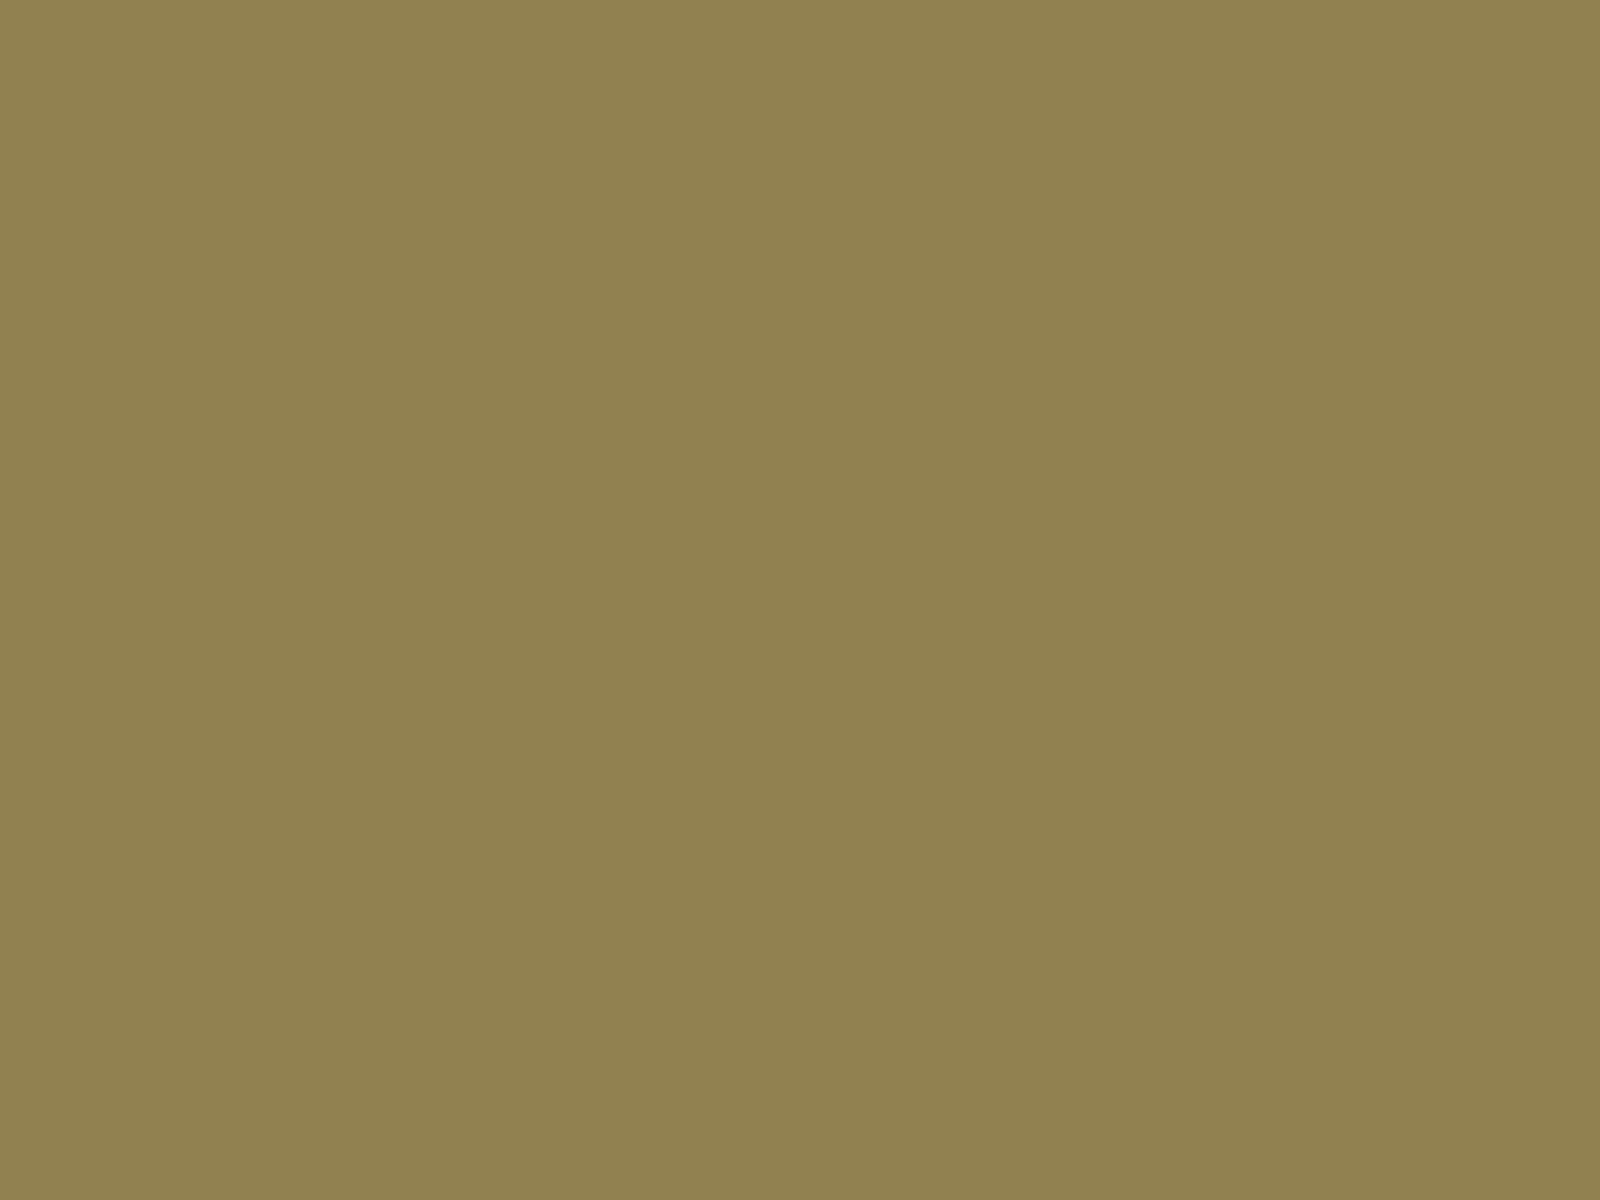 1600x1200 Dark Tan Solid Color Background